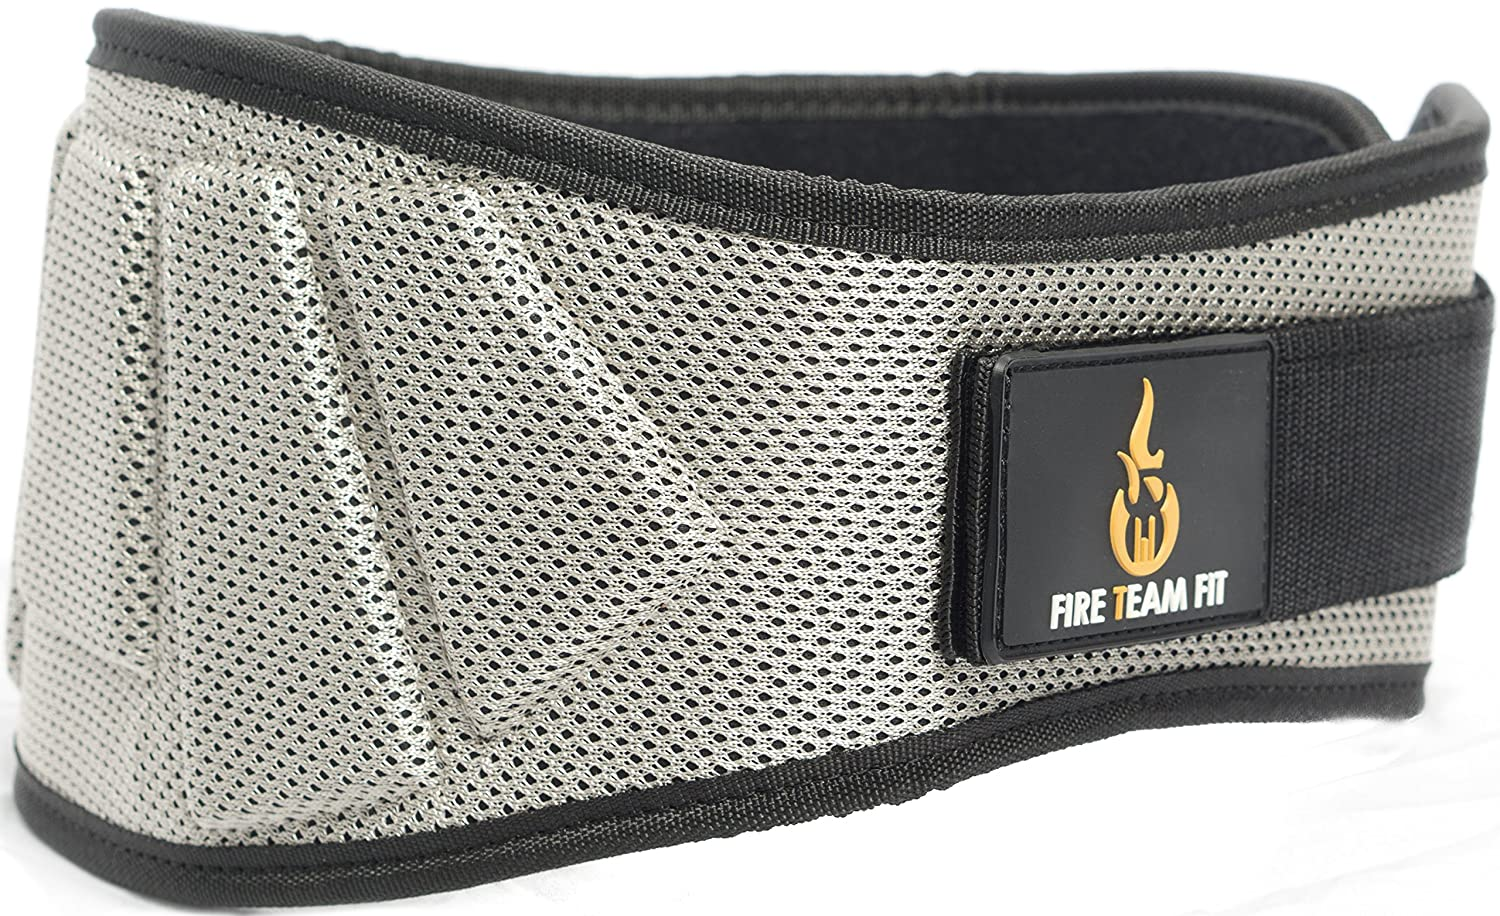 #1. Fire Team Fit Weightlifting Belt